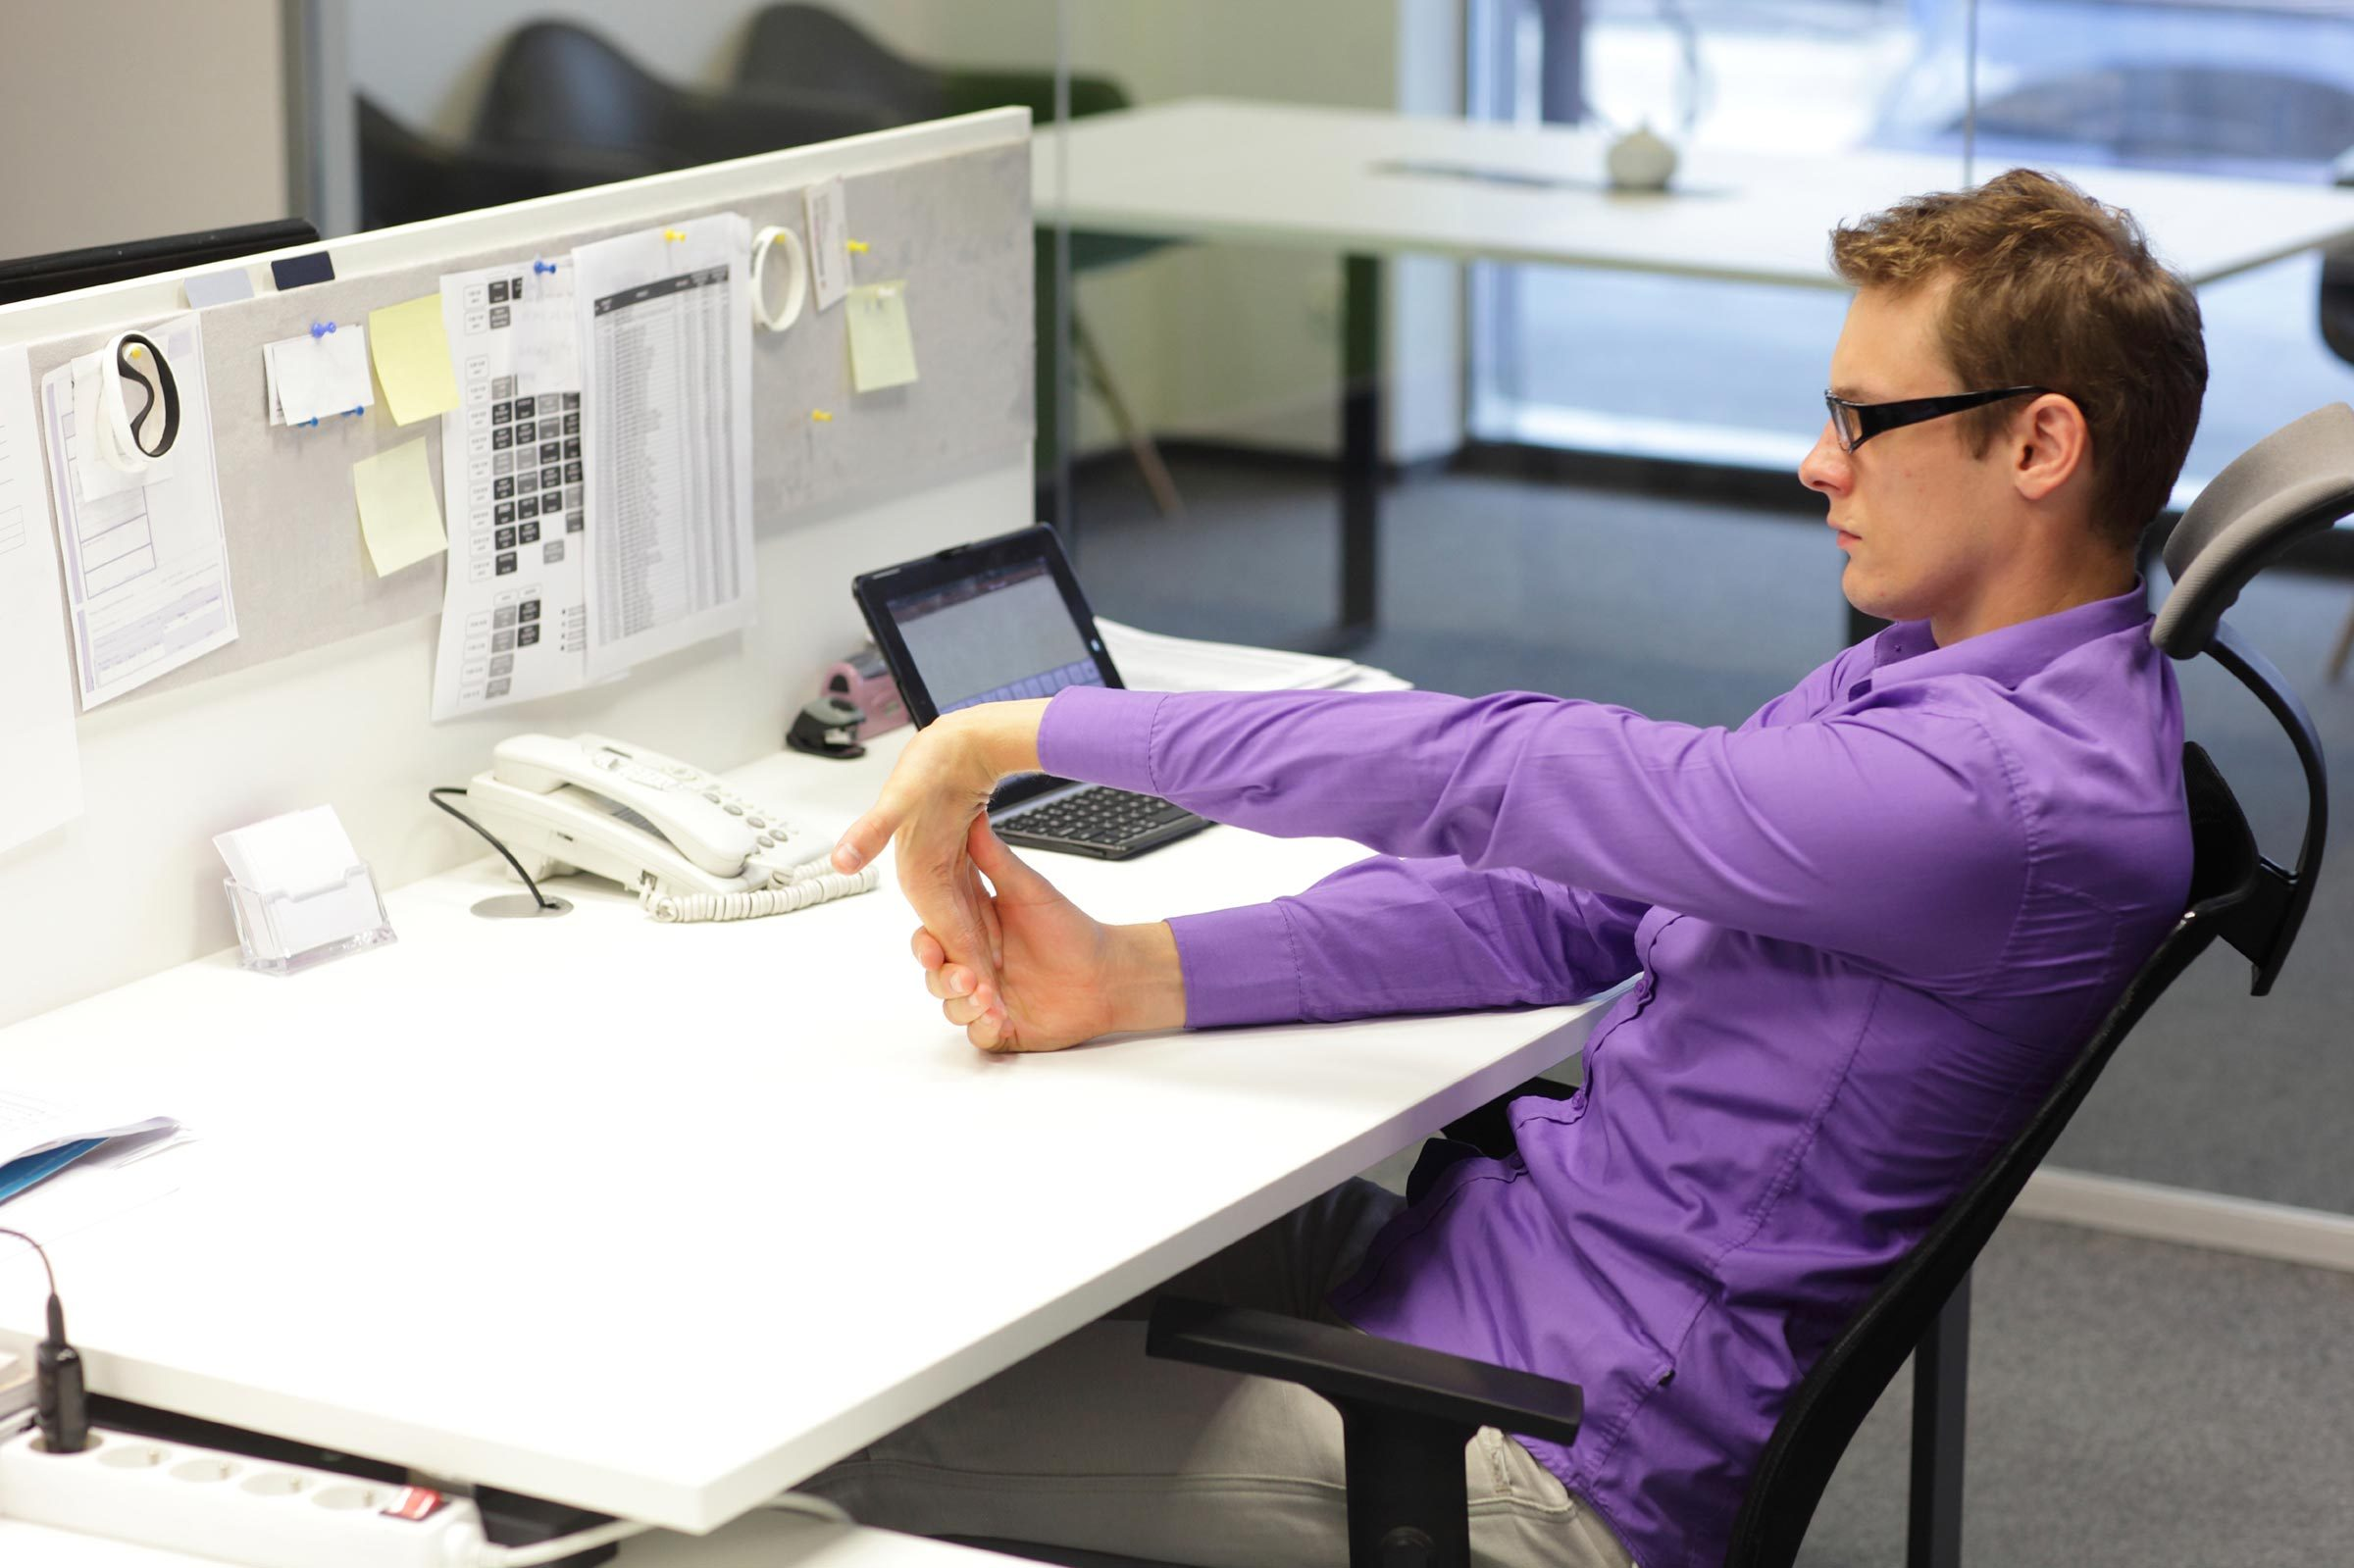 Feeling Lazy At Work? These 7 Things Every Lazy Person Must Do To Stay Energetic At Work 4